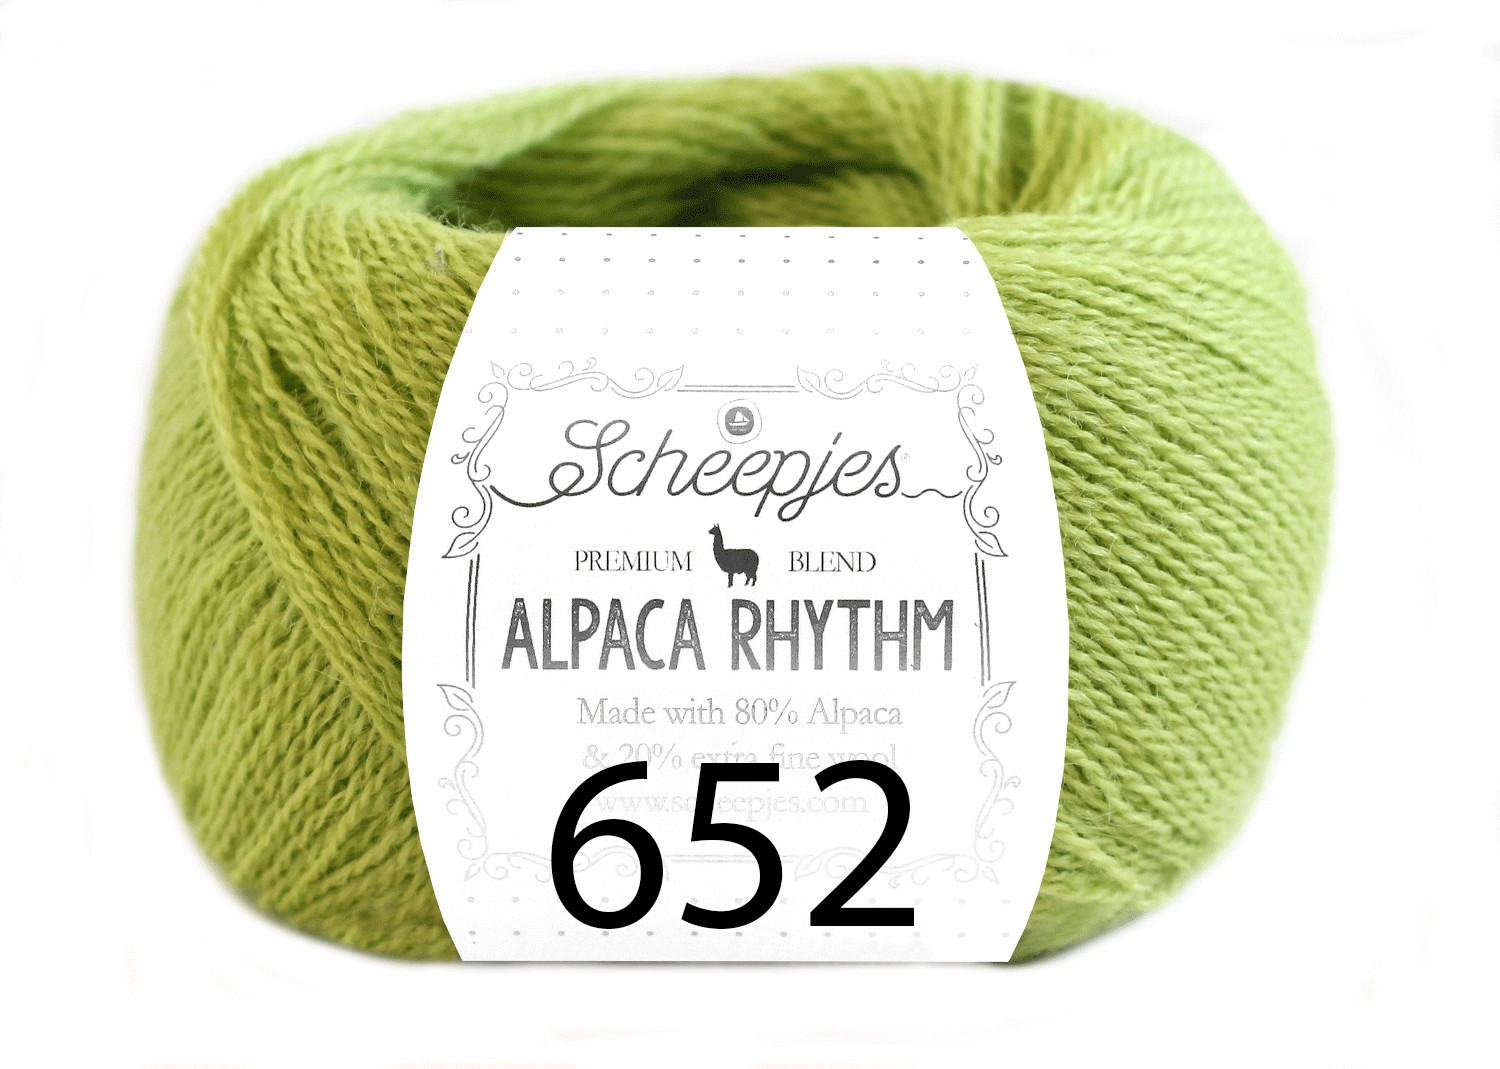 Scheepjes- Alpaca Rhythm 652 Smooth